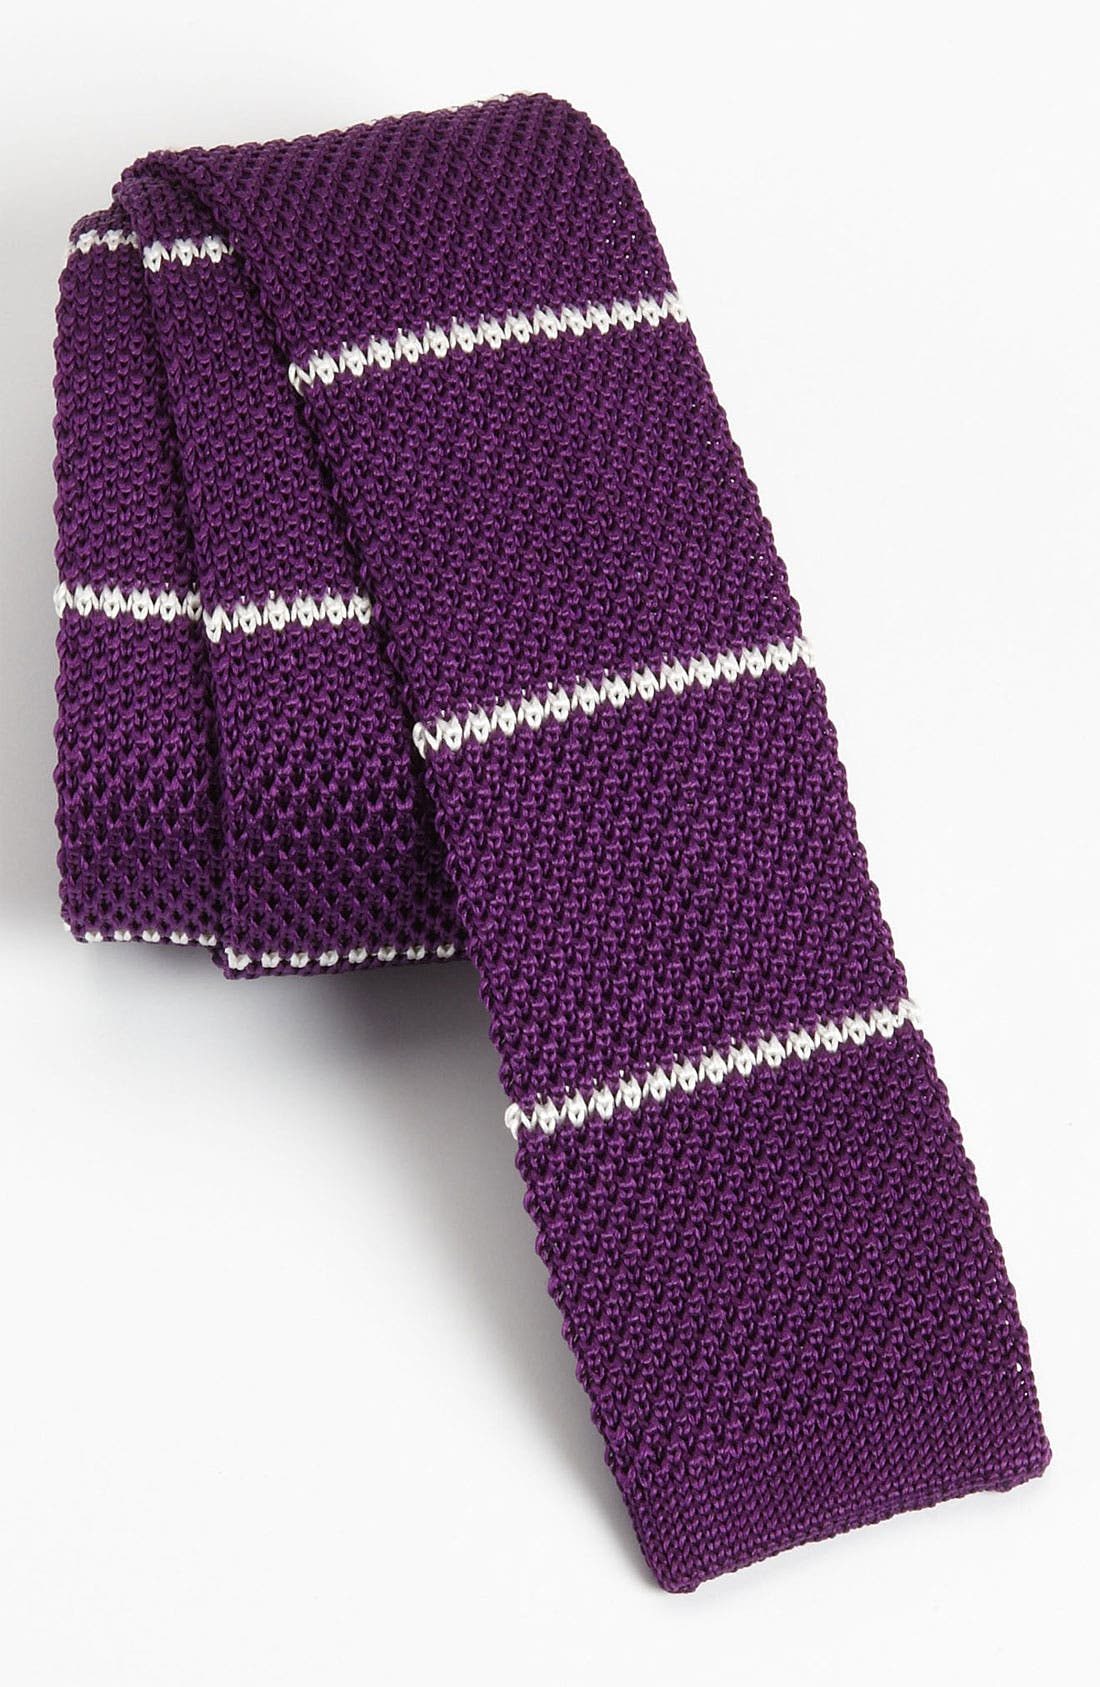 Main Image - The Tie Bar Knit Tie